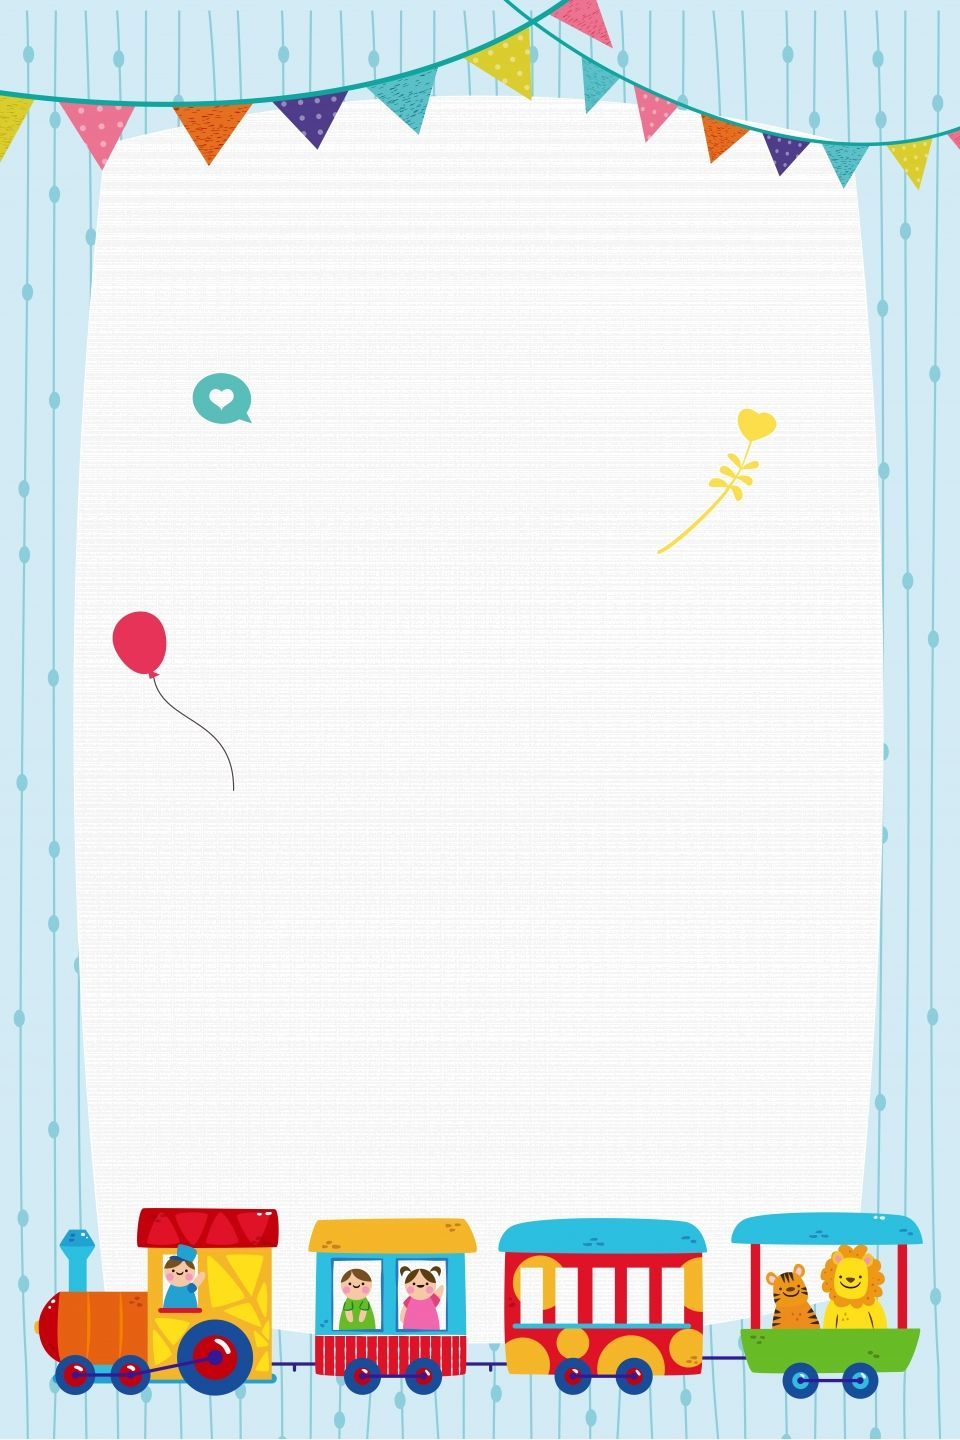 Color Childhood Six One Children S Day Background Template Children S Day Kids Background Baby Scrapbook